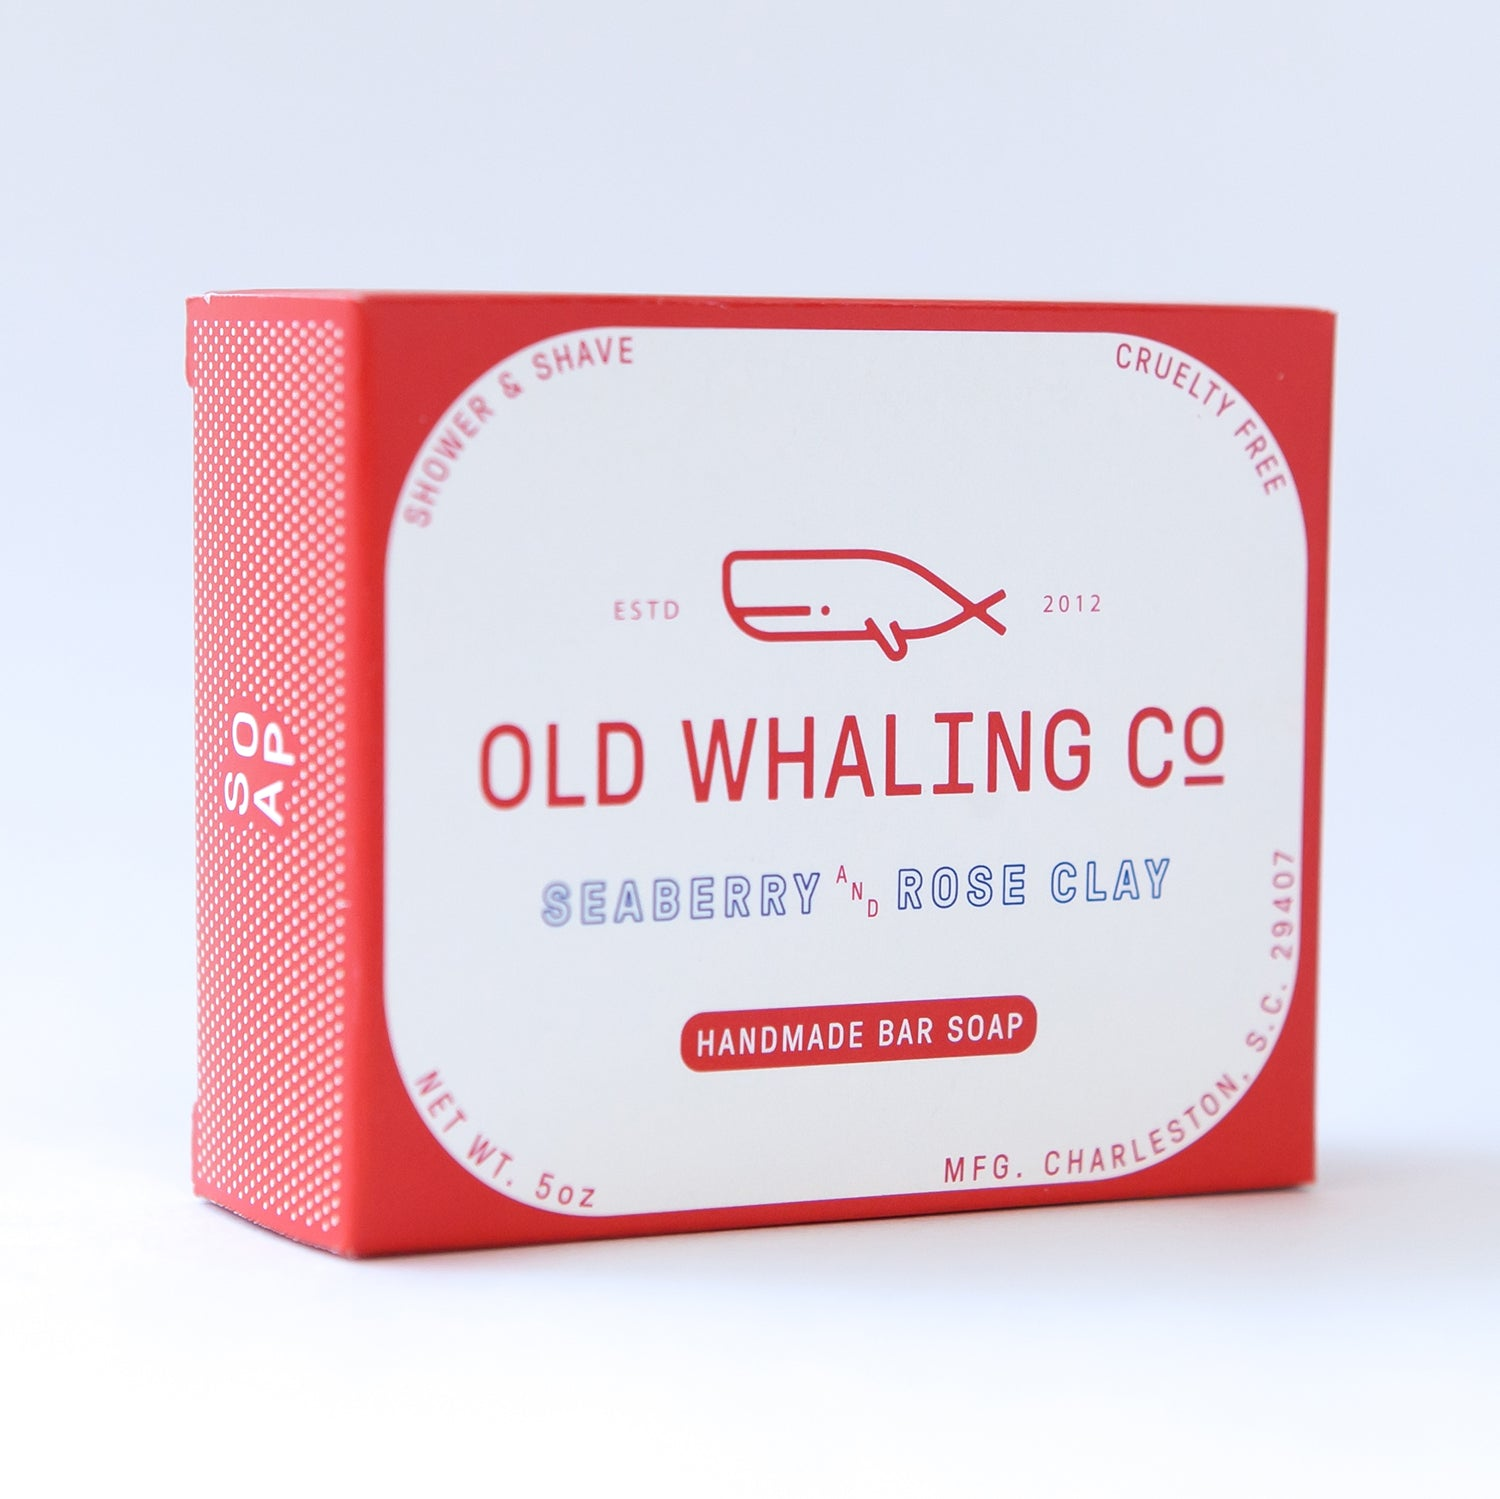 Old Whaling Co Handmade Bar Soaps- Seaberry & Rose Clay